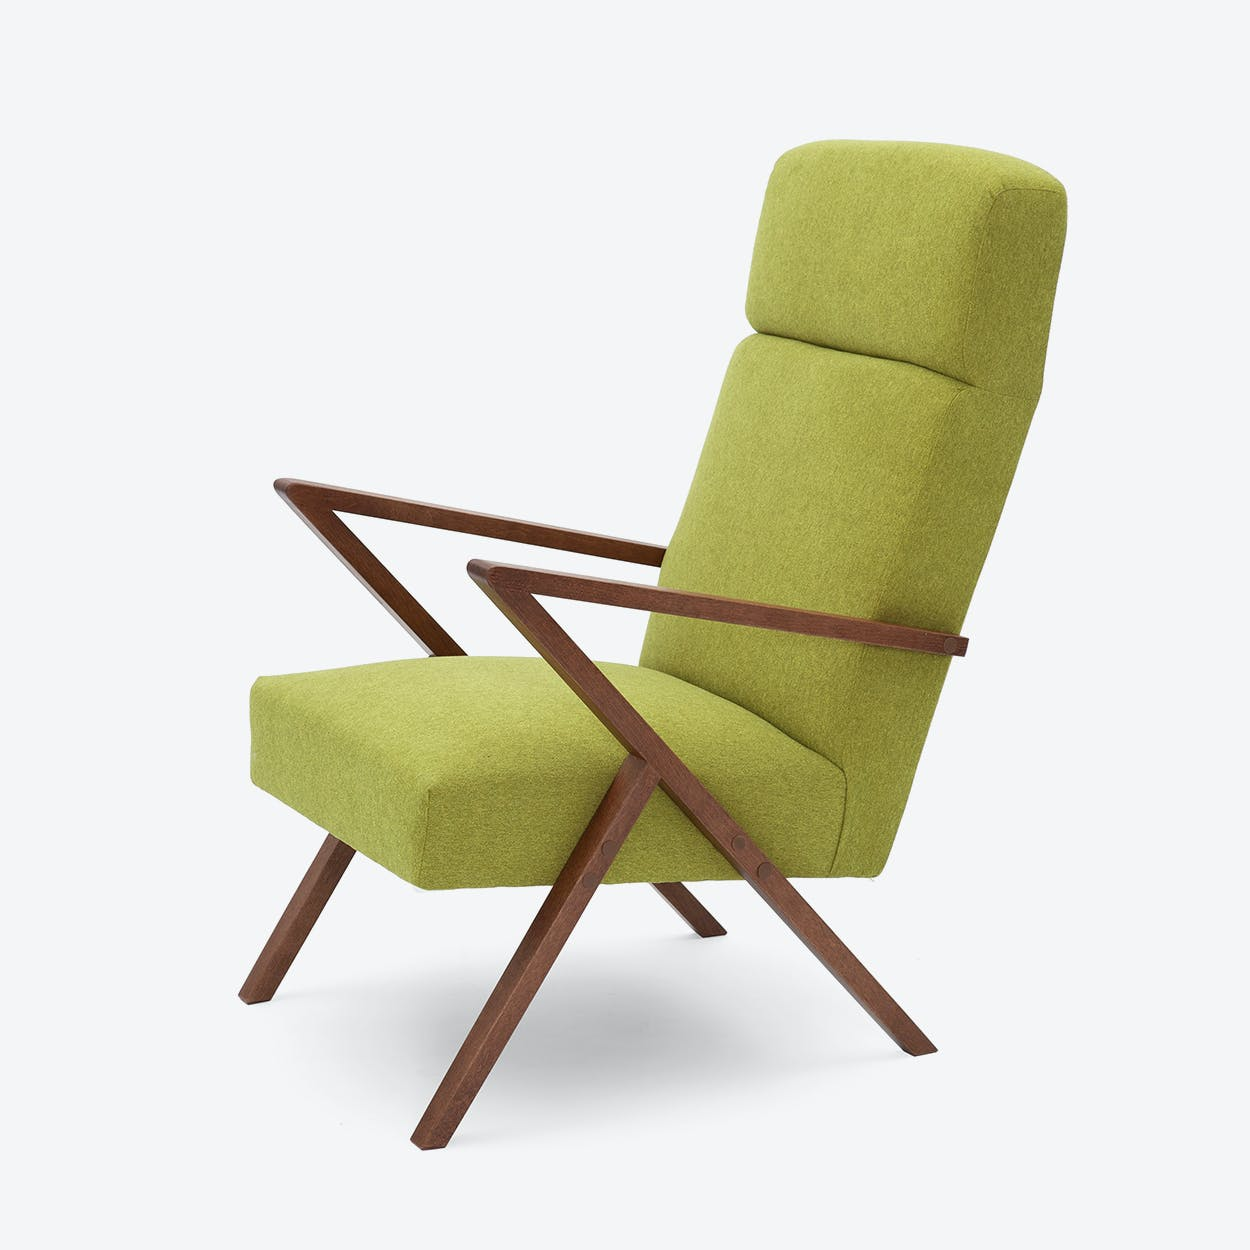 Retrostar Lounge Chair - Basic-Line in Mustard-Green